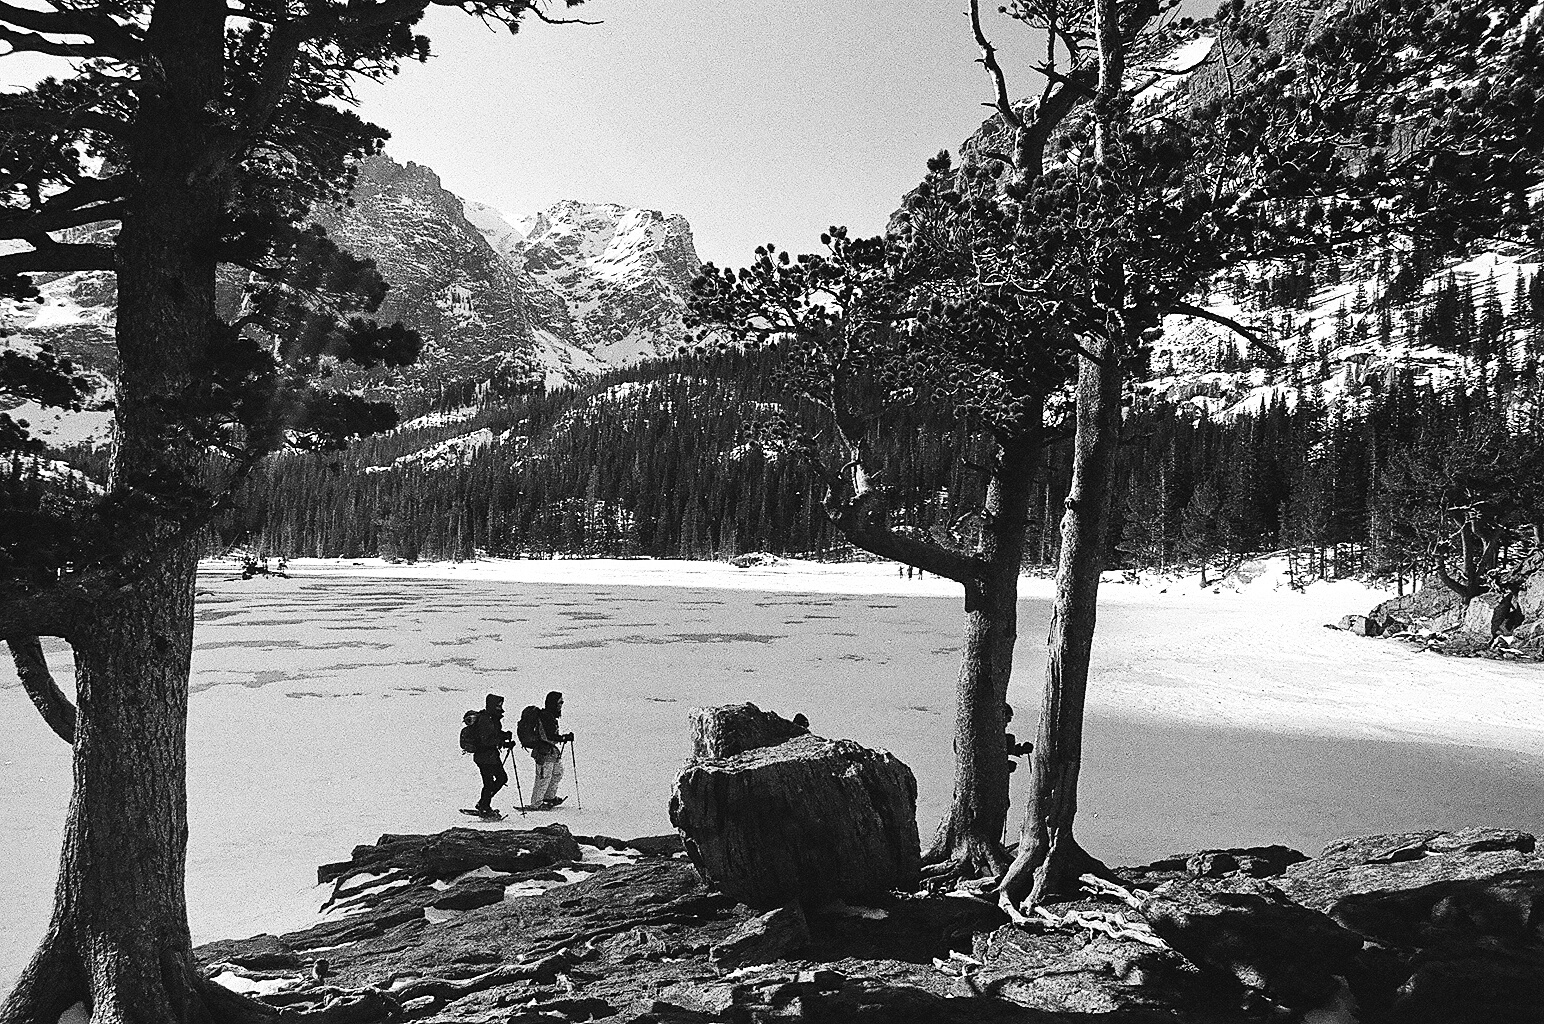 Strangers on snowshoes in Rocky Mountain National Park.